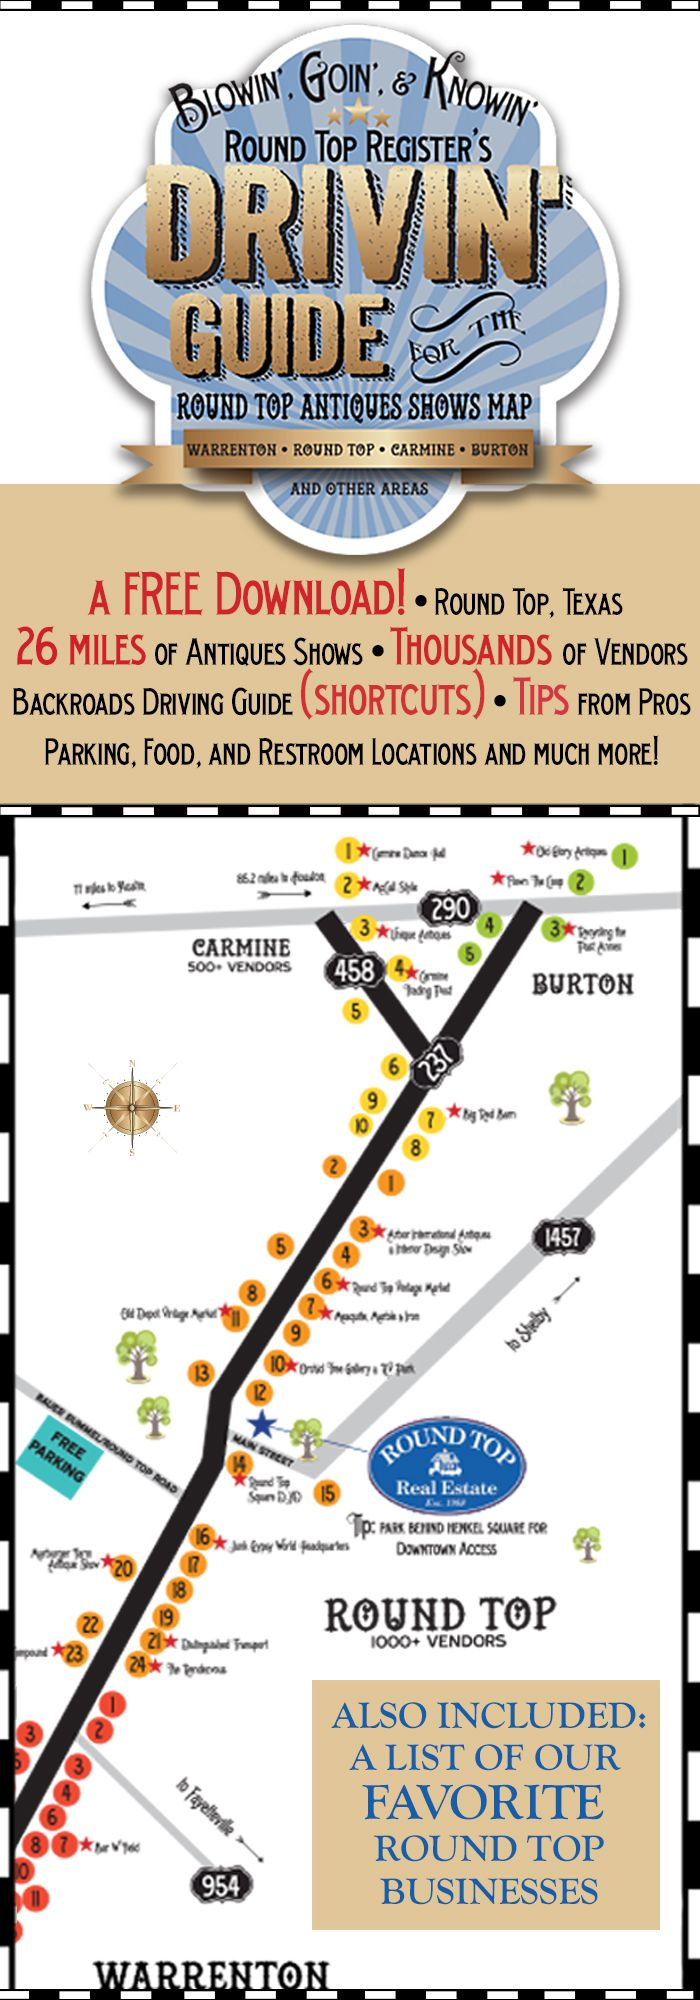 Round Top Antiques Show map helps newbies and veterans navigate the 20-plus mile long antiques venue in Central Texas.